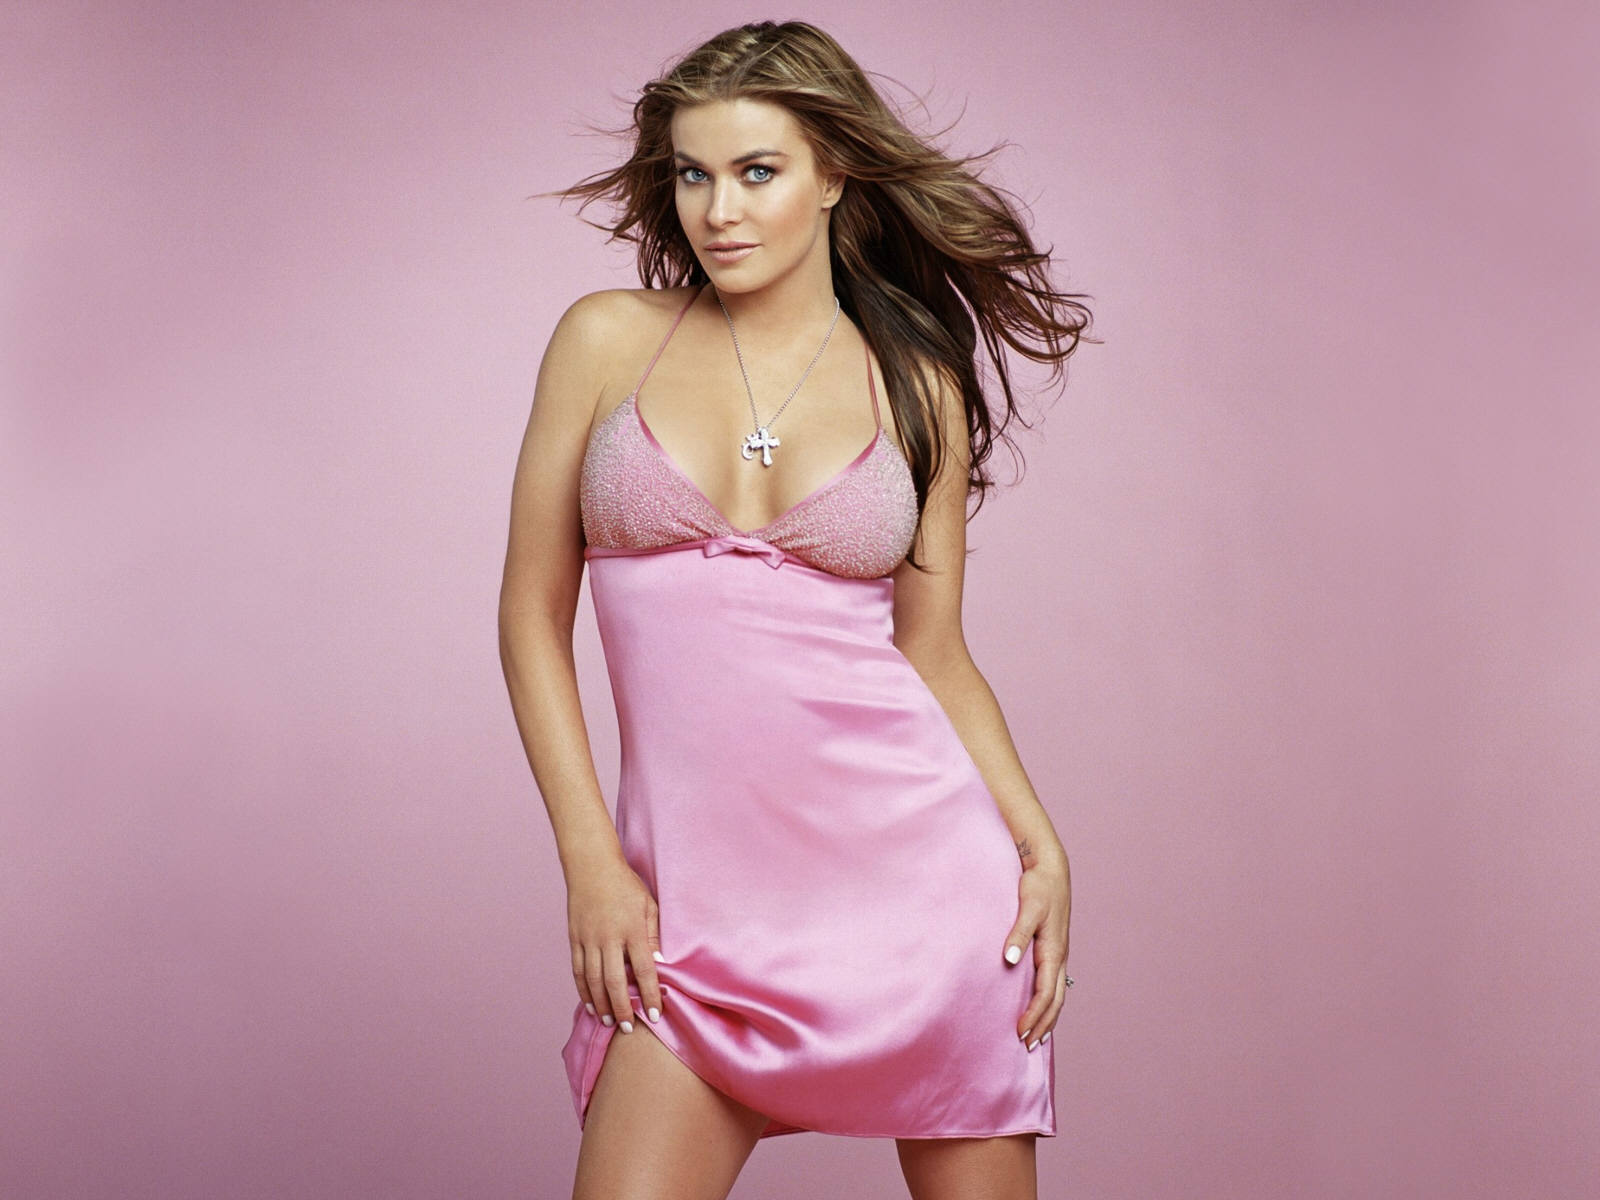 know-carmen-electra-s-height--1